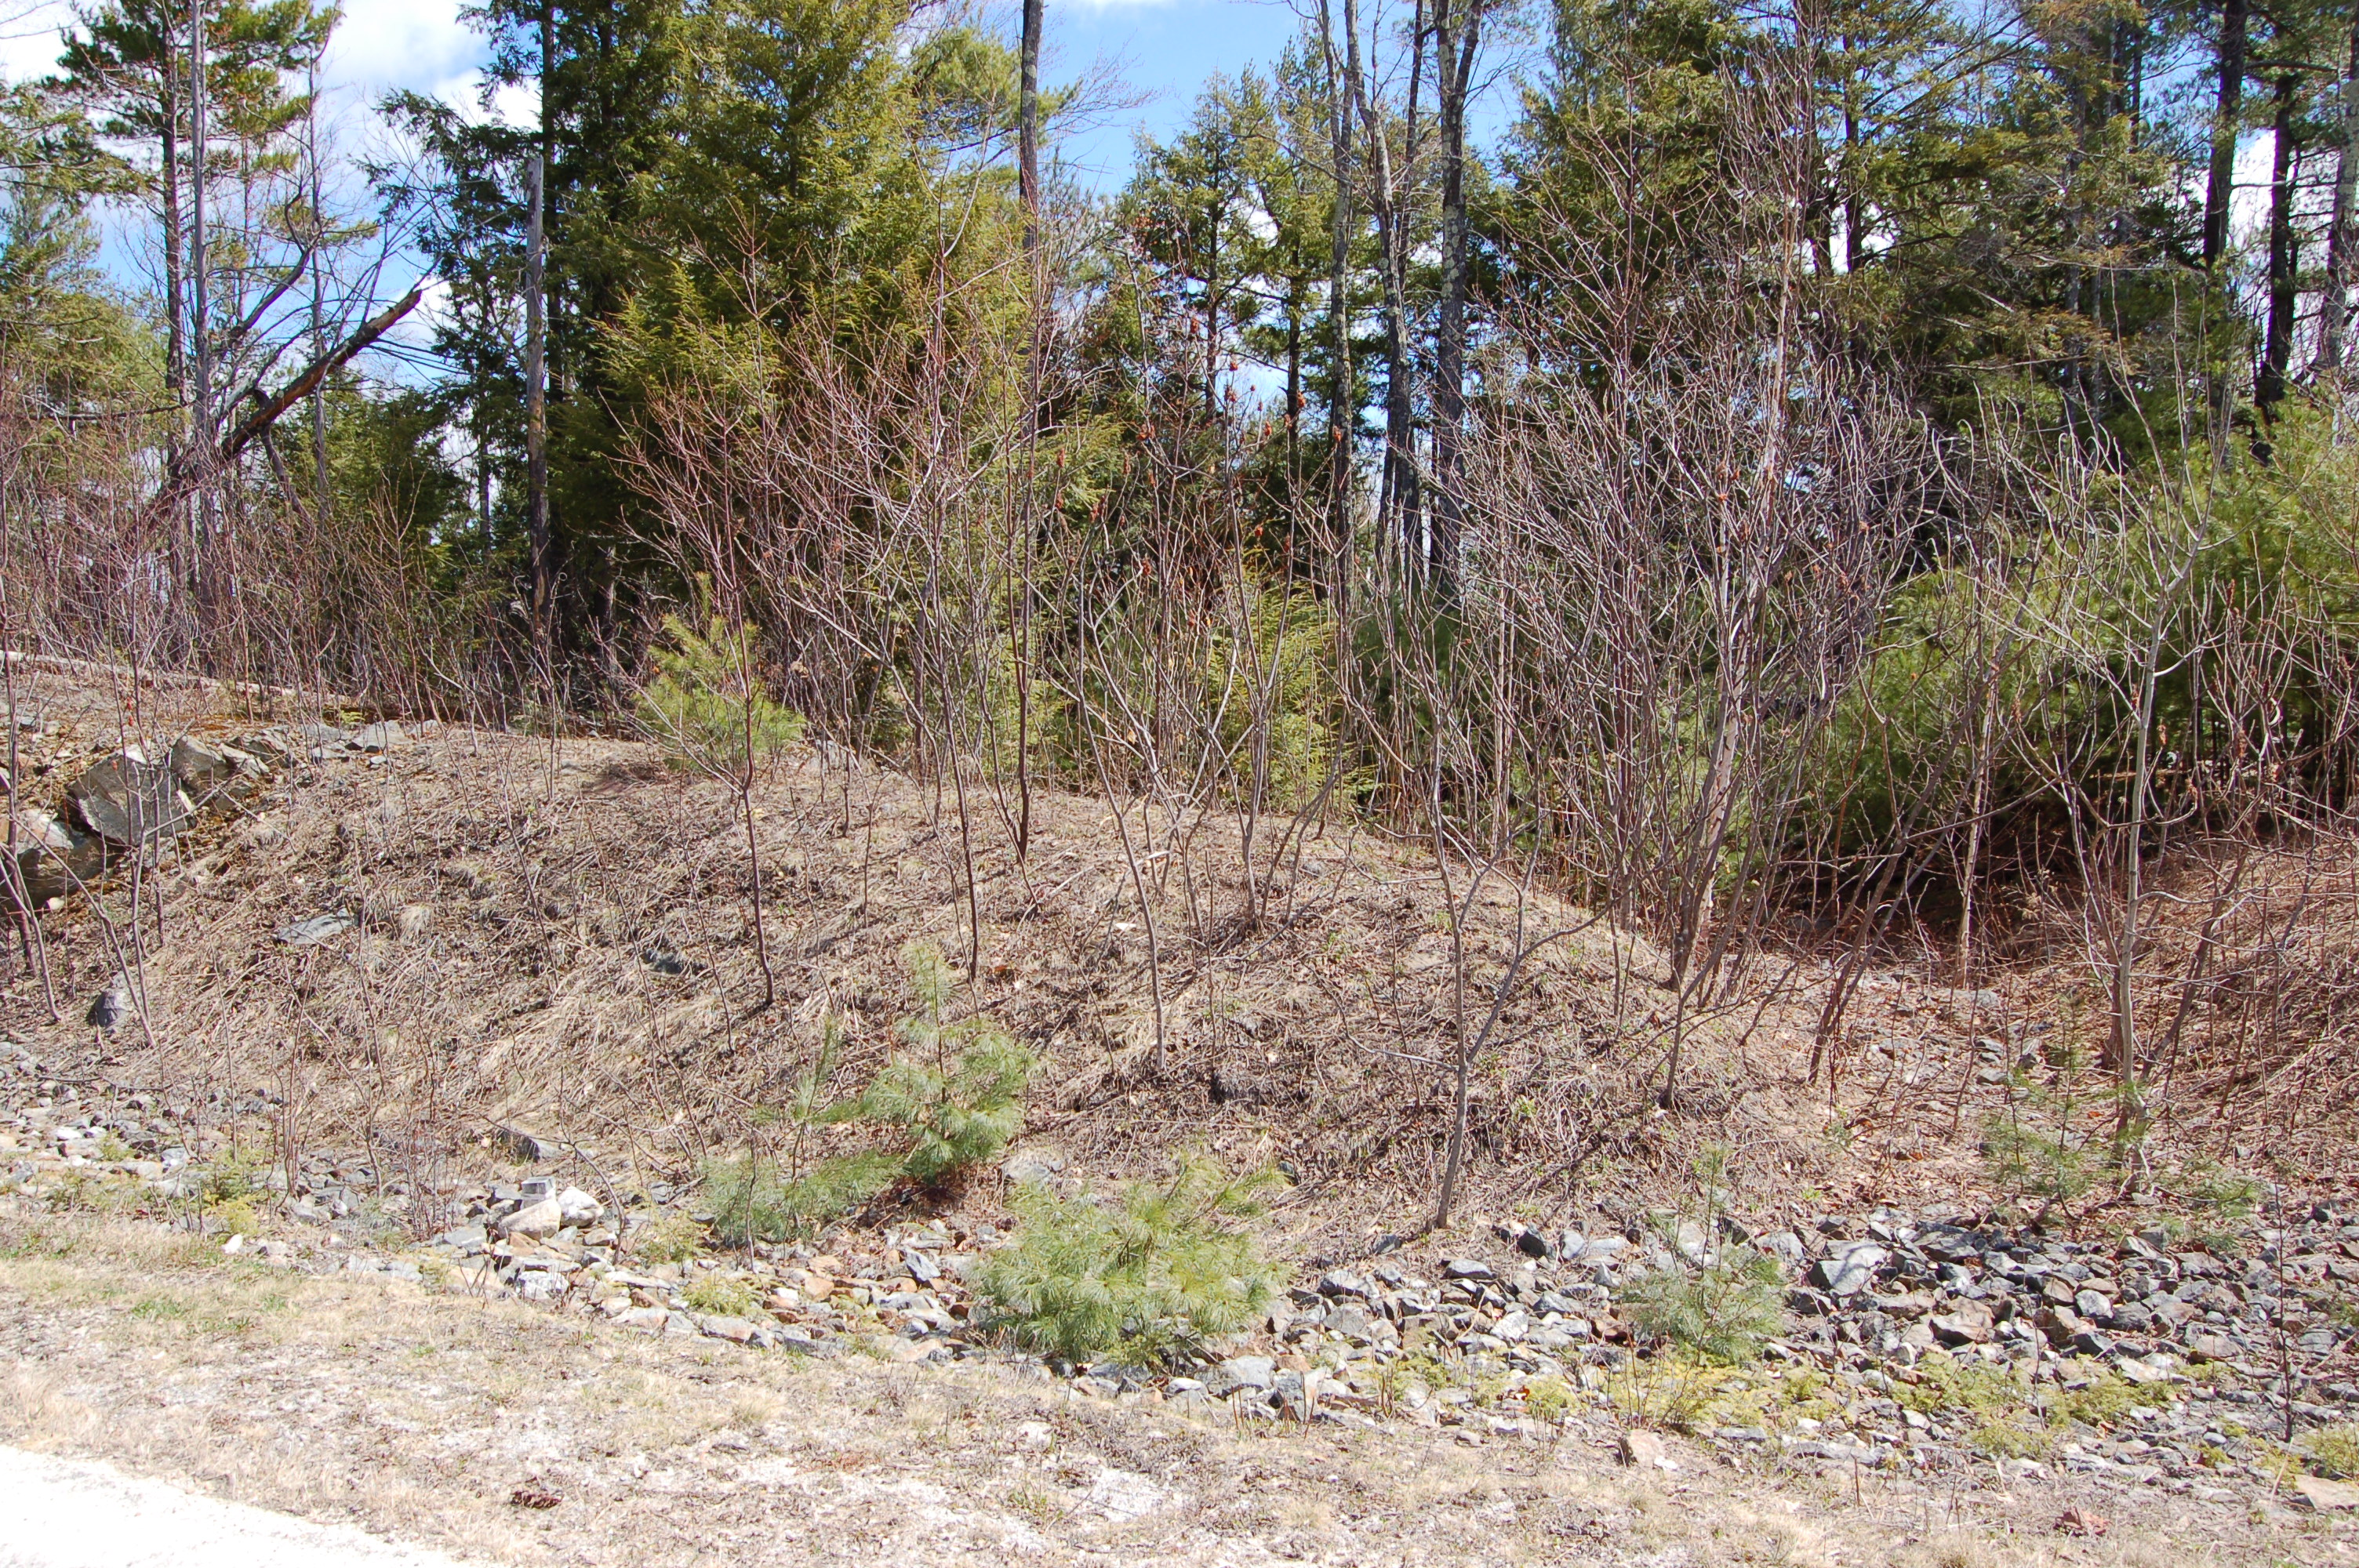 Land for Sale at 105 Chapin Way, Newbury Newbury, New Hampshire, 03255 United States